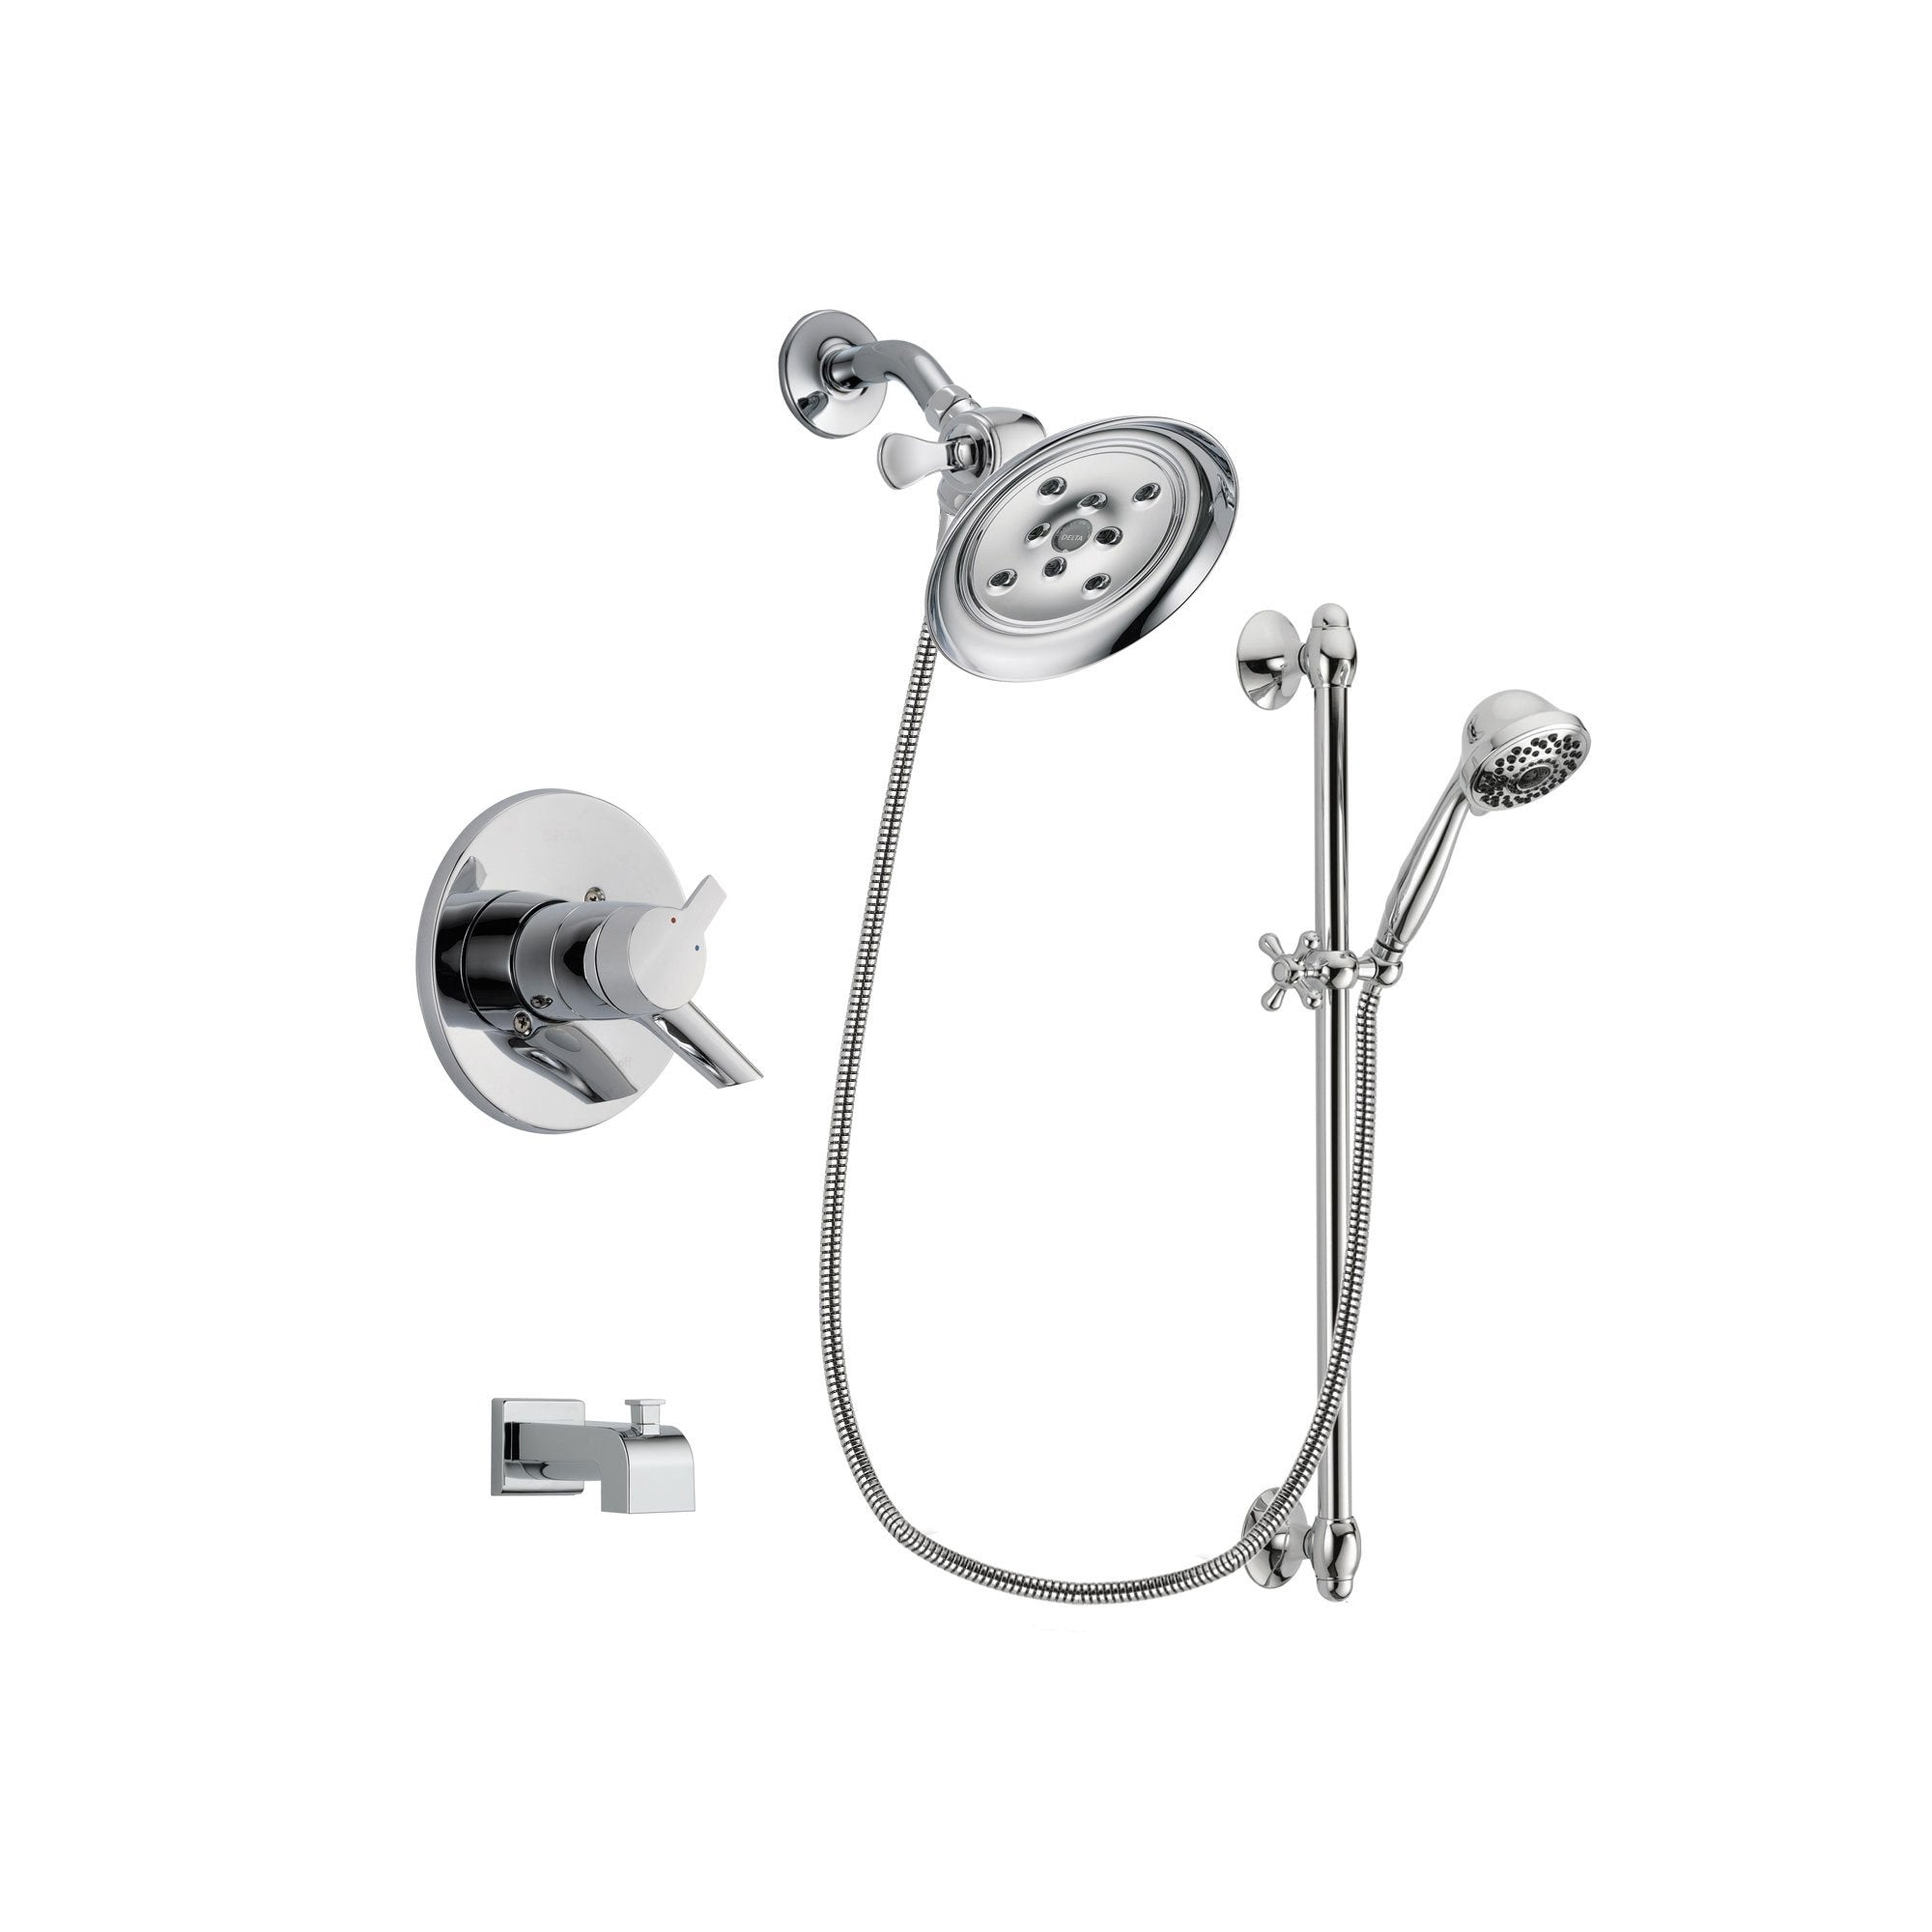 Delta Compel Chrome Tub and Shower Faucet System with Hand Shower DSP0653V